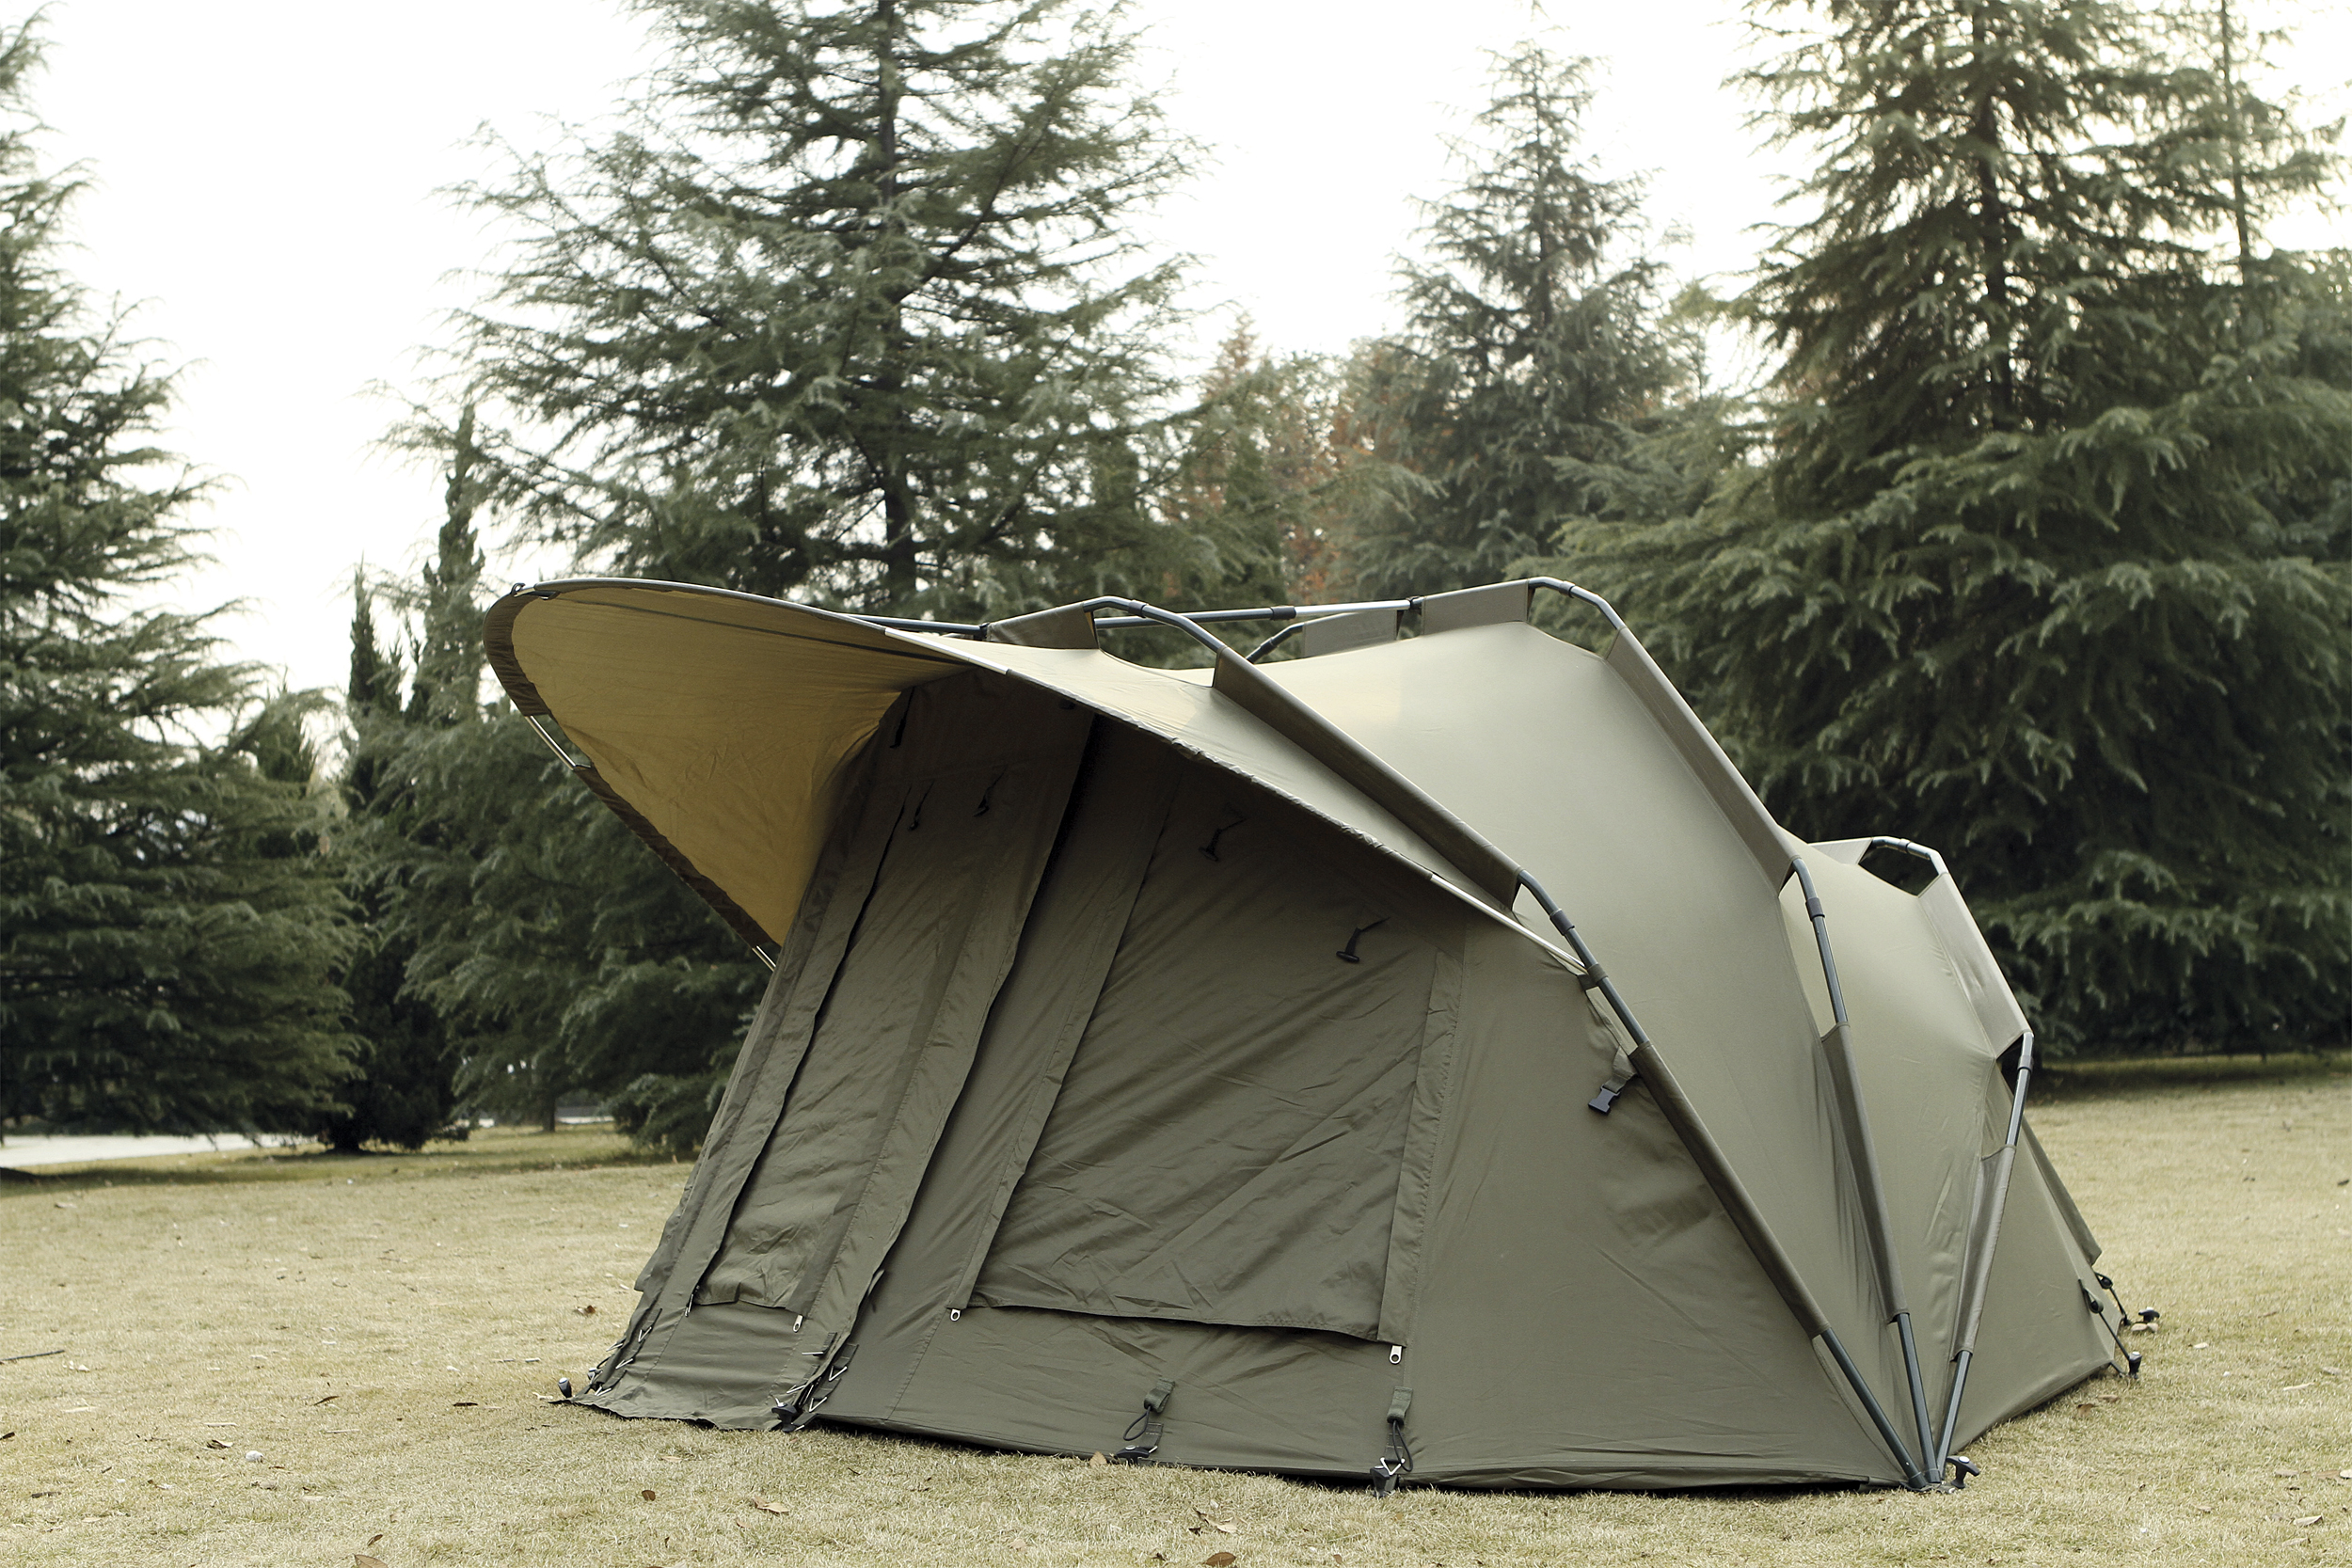 Pelzer-All Weather Dome All Weather Dome-1 - Gerlinger.de